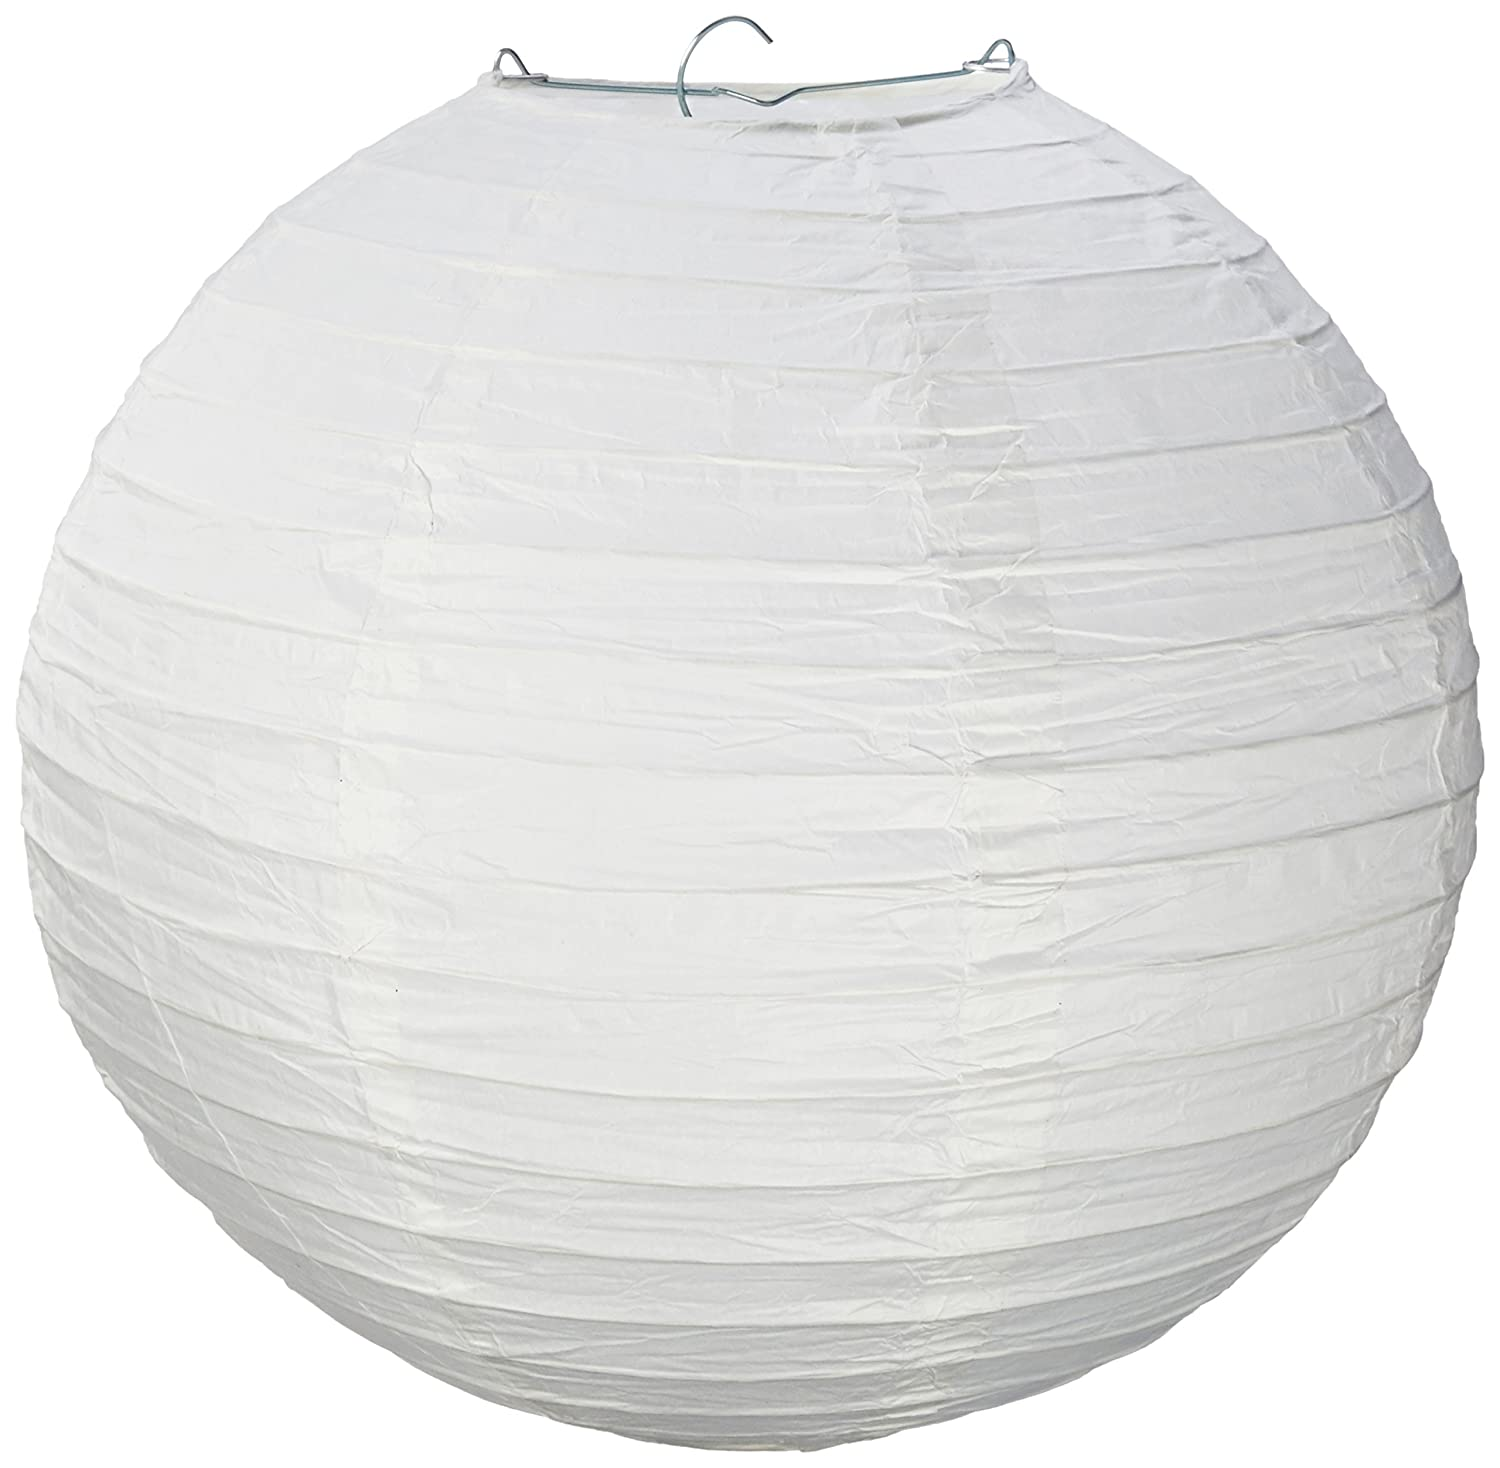 Amazon white floor lamps lamps shades tools - Lowpricenice Electronix Express 78bw2406004 12 White Paper Lantern Lamp Shades 12 Pack